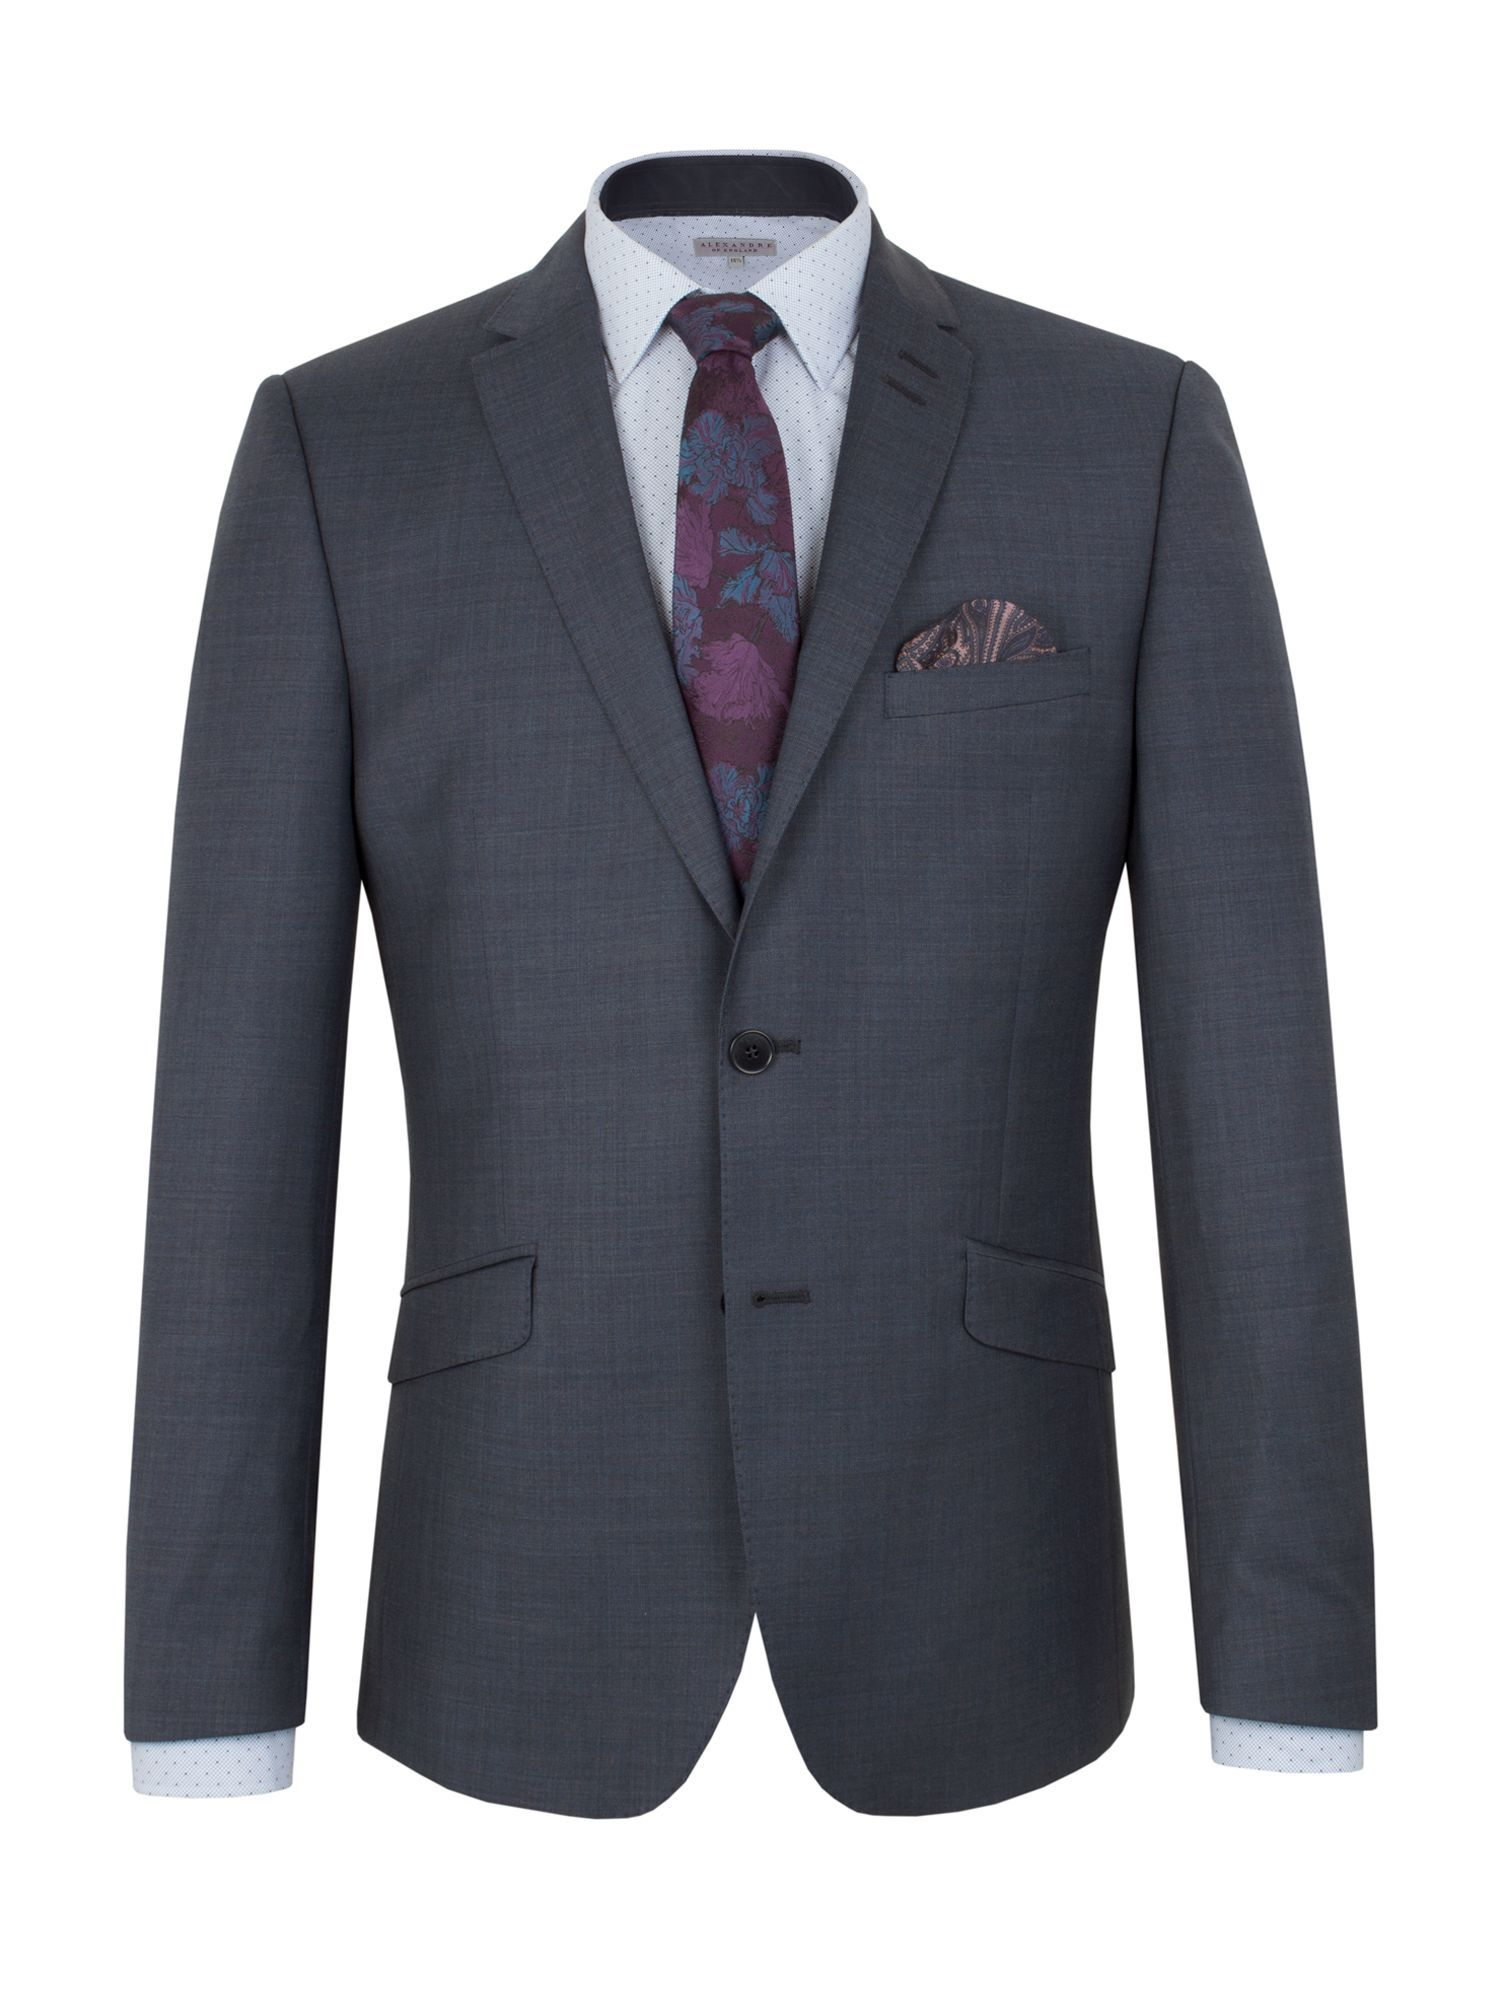 Buy: Men's Alexandre of England Plain Slim Fit Suit Jacket, Blue for just: £82.00 House of Fraser Currently Offers: Men's Alexandre of England Plain Slim Fit Suit Jacket, Blue from Store Category: Men > Suits & Tailoring > Suit Jackets for just: GBP82.00